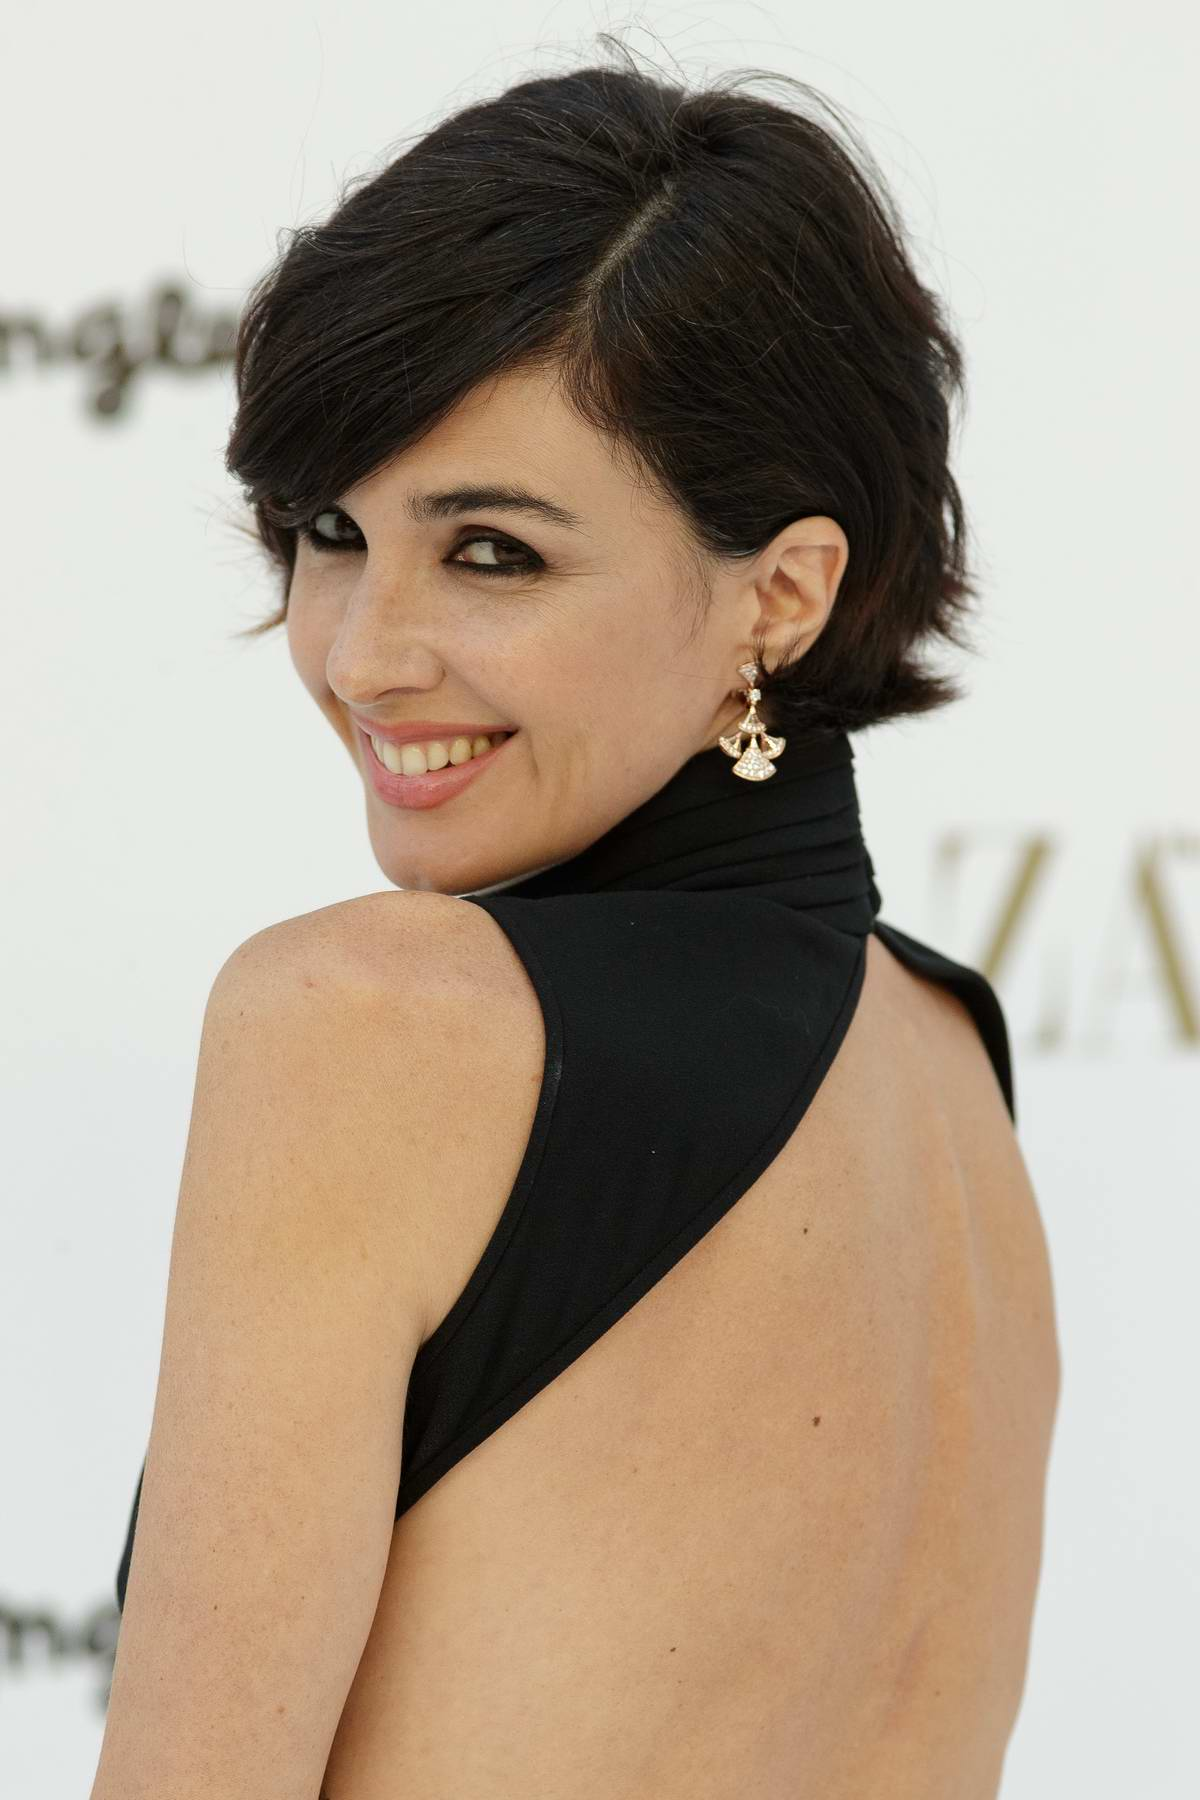 Paz Vega at the Photocall of the 150th Anniversary of Harper's bazaar Party in Madrid, Spain